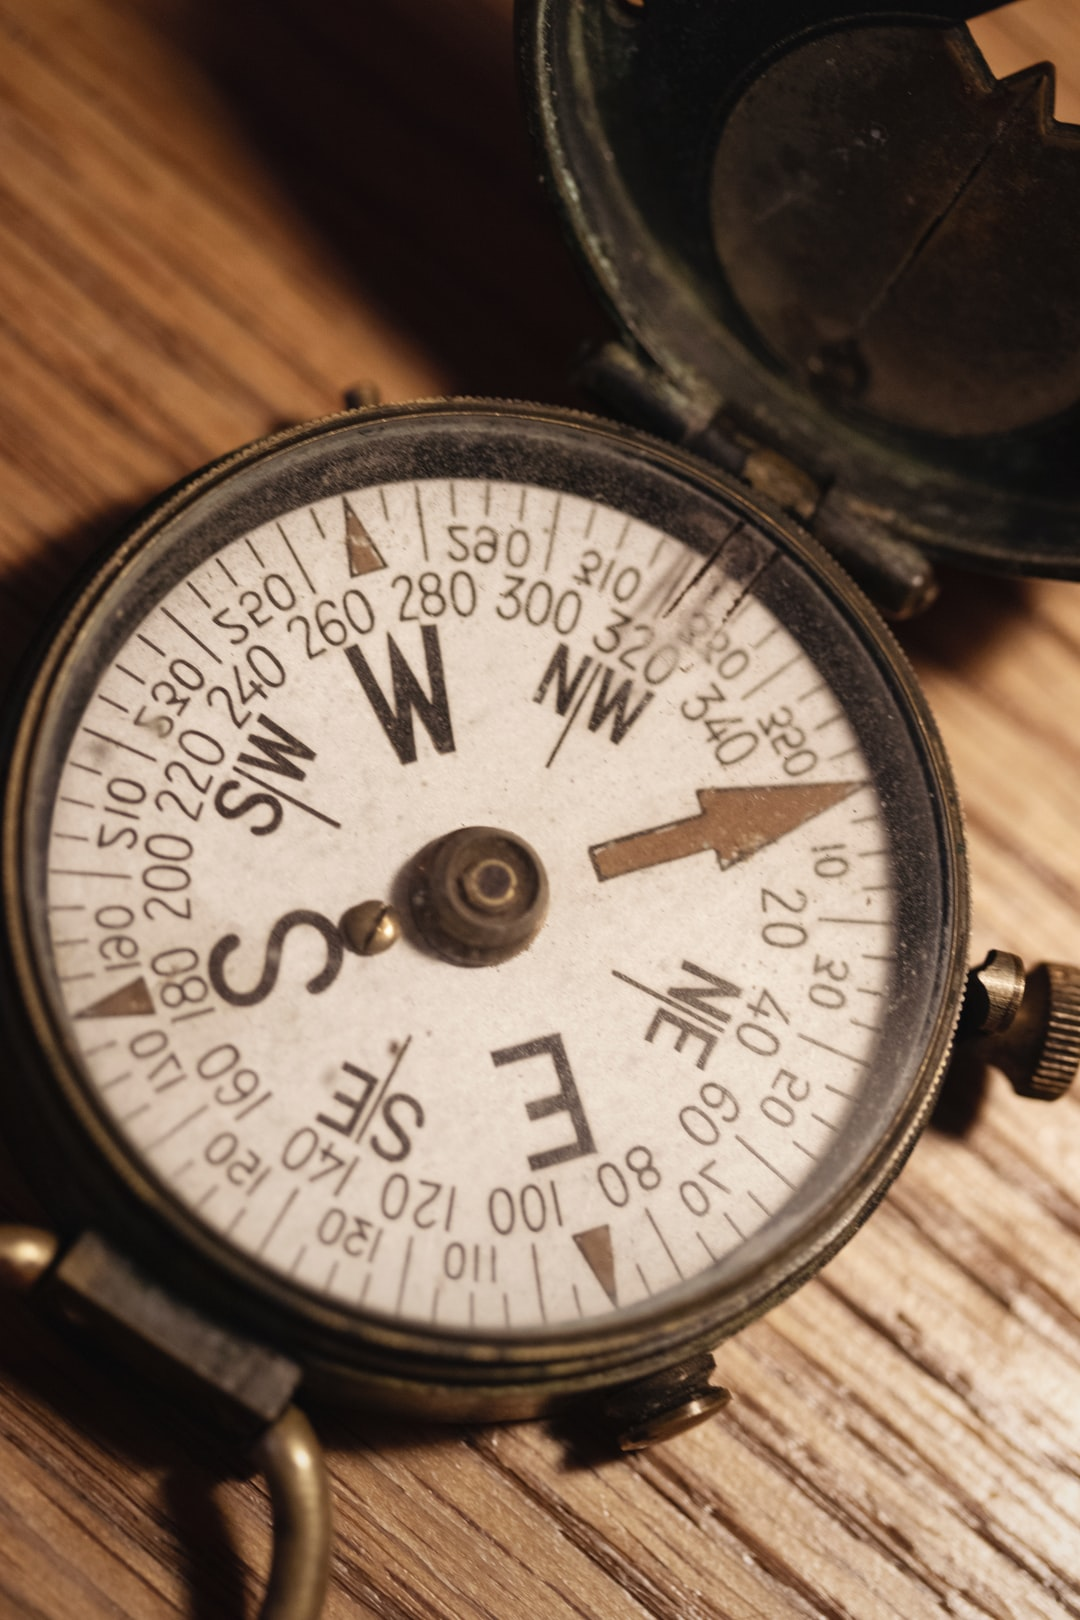 Antique U.S. Engineer Corps solid brass magnetic compass, manufactured in 1918. Compass dial is ivory and features large dire